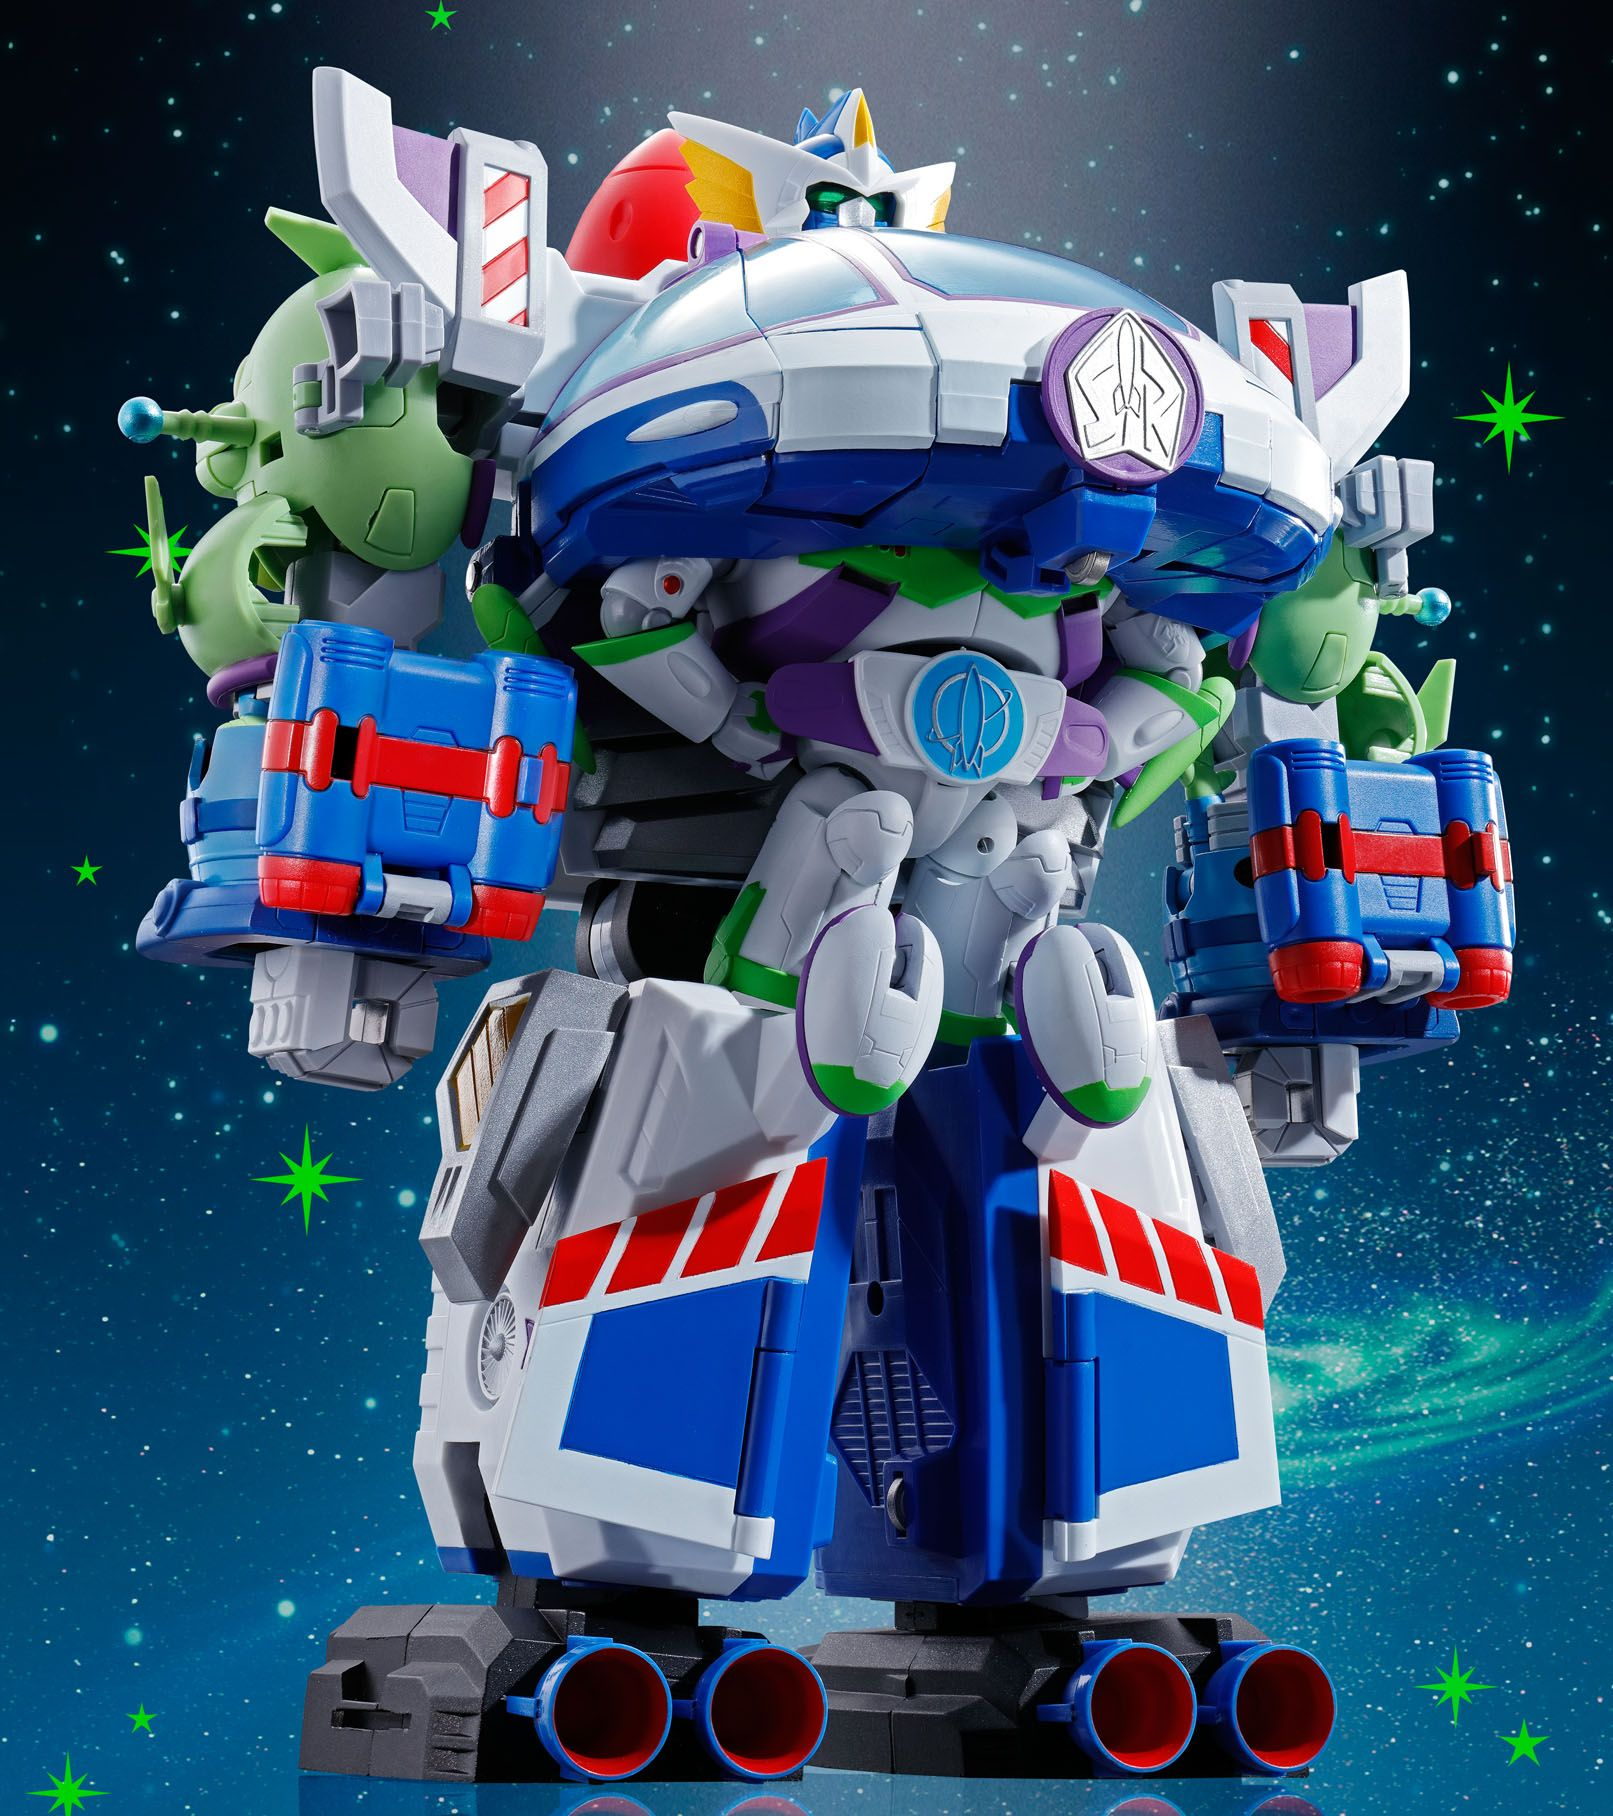 Toy Story Characters by Bandai Form a Voltron Like Mega Toy